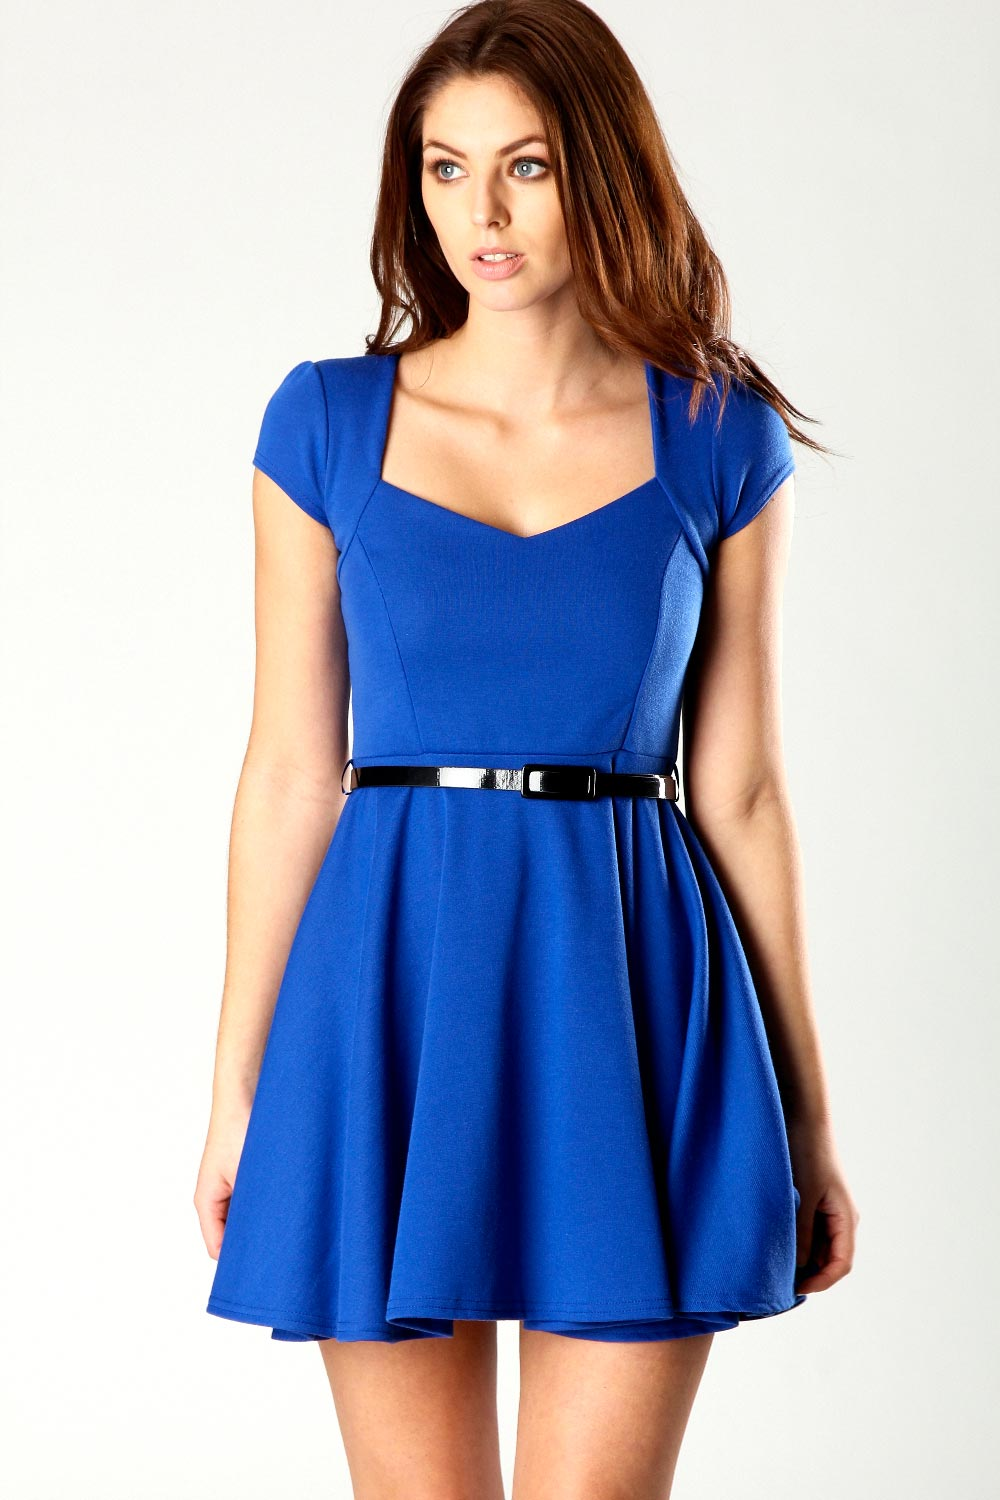 Boohoo Lara Sweetheart Neck Skater Dress in Blue BNWT  b51c3a018